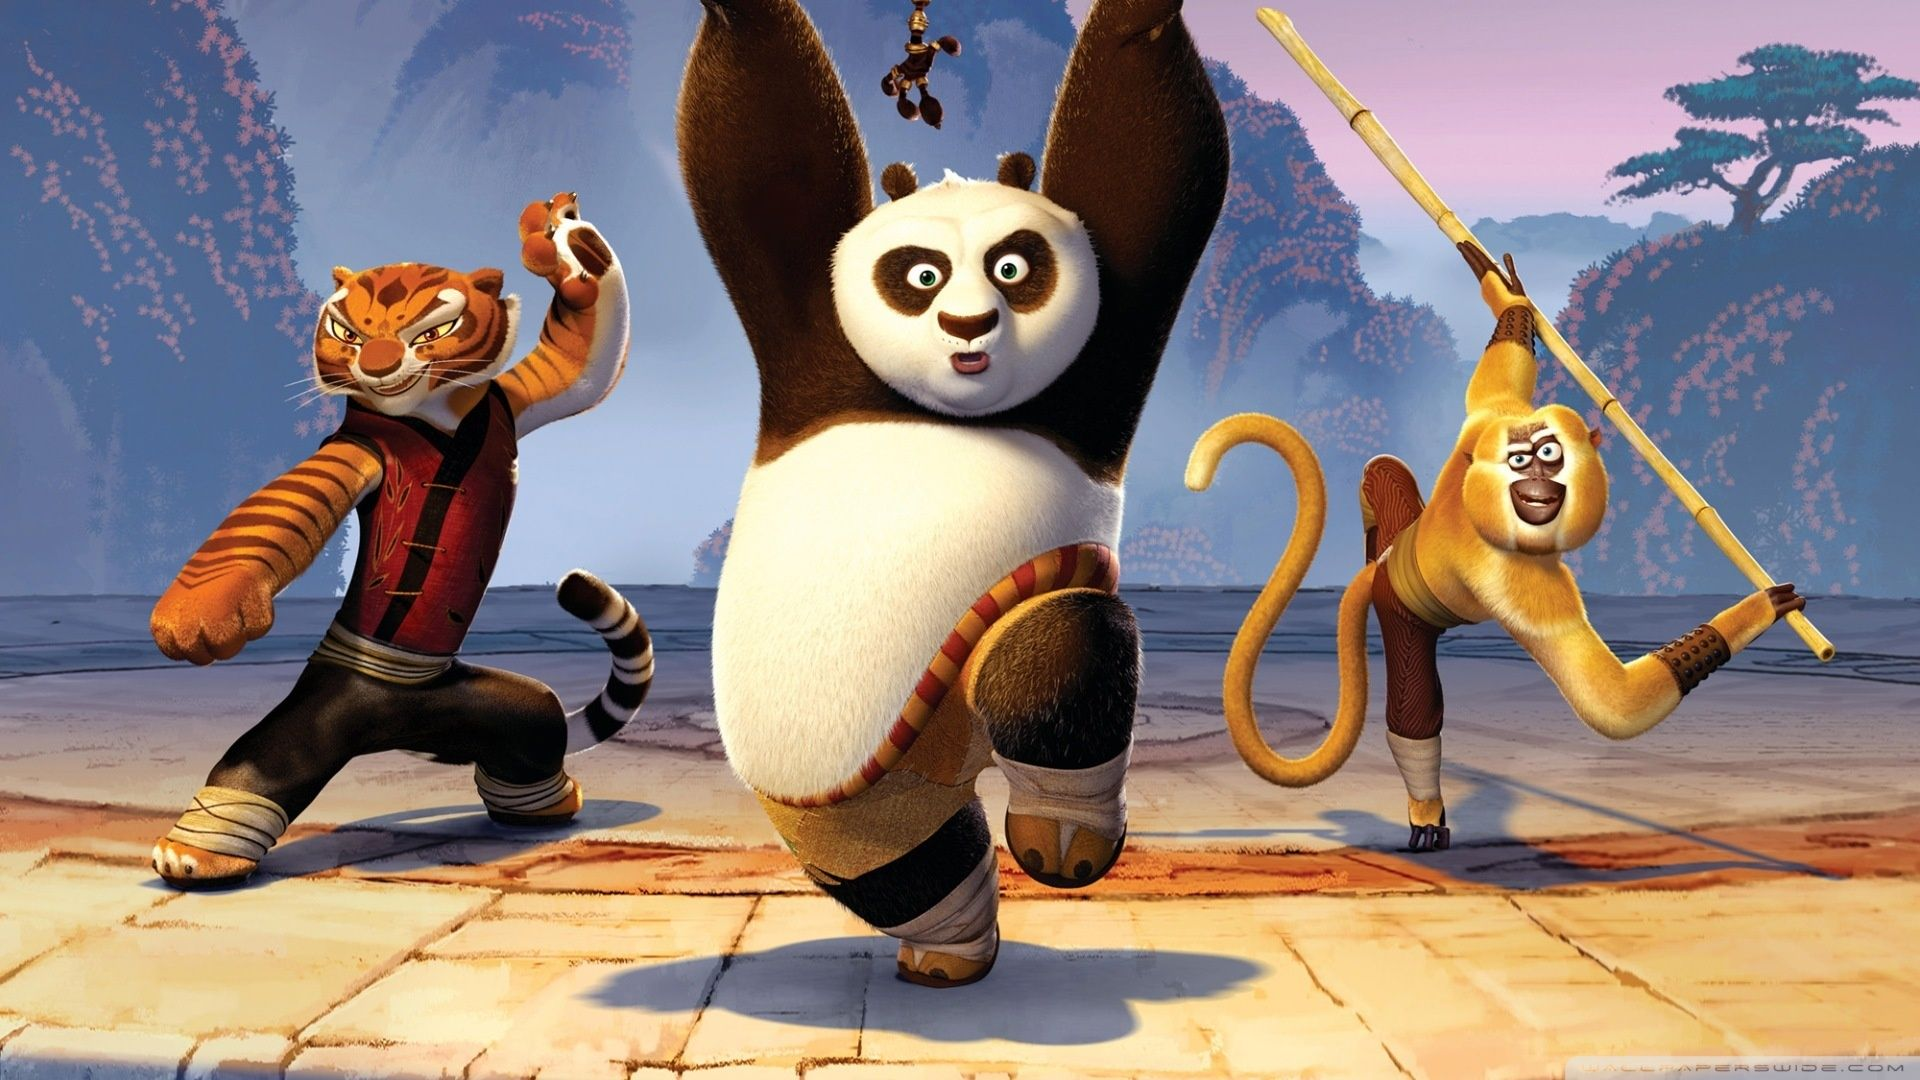 Find out kung fu panda 2 movie wallpaper on http